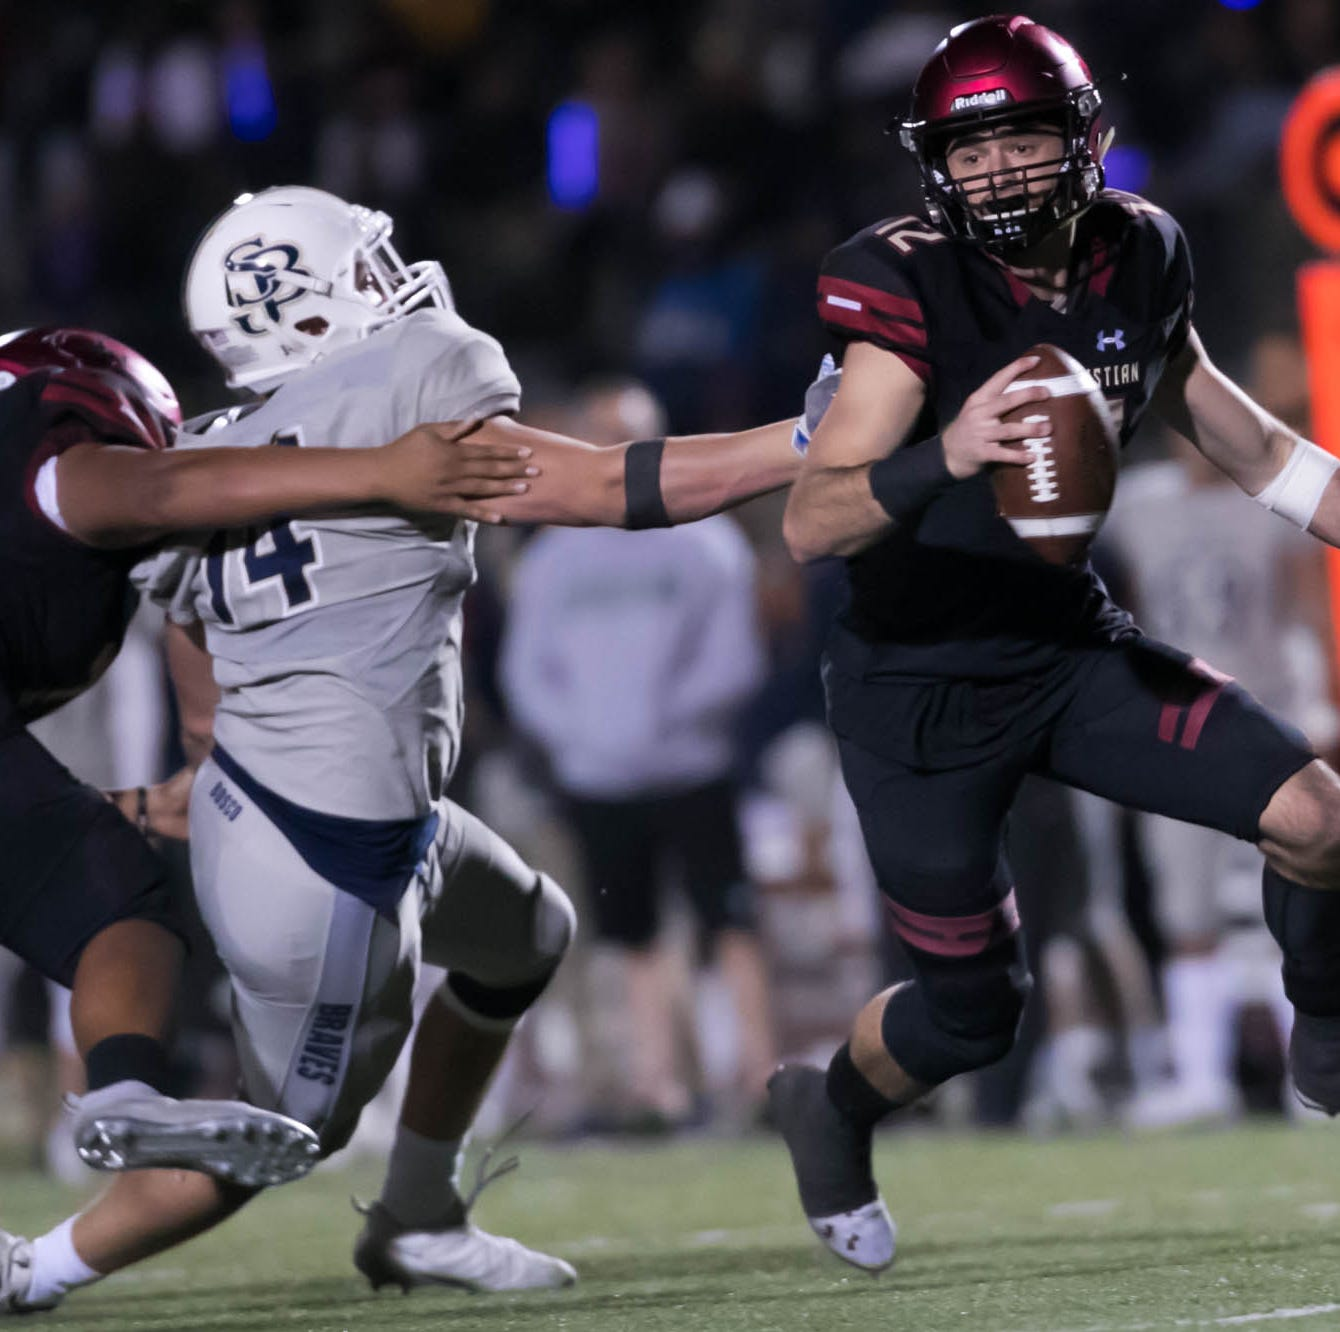 Oaks Christian overwhelmed by national powerhouse St. John Bosco in Division 1 semifinals